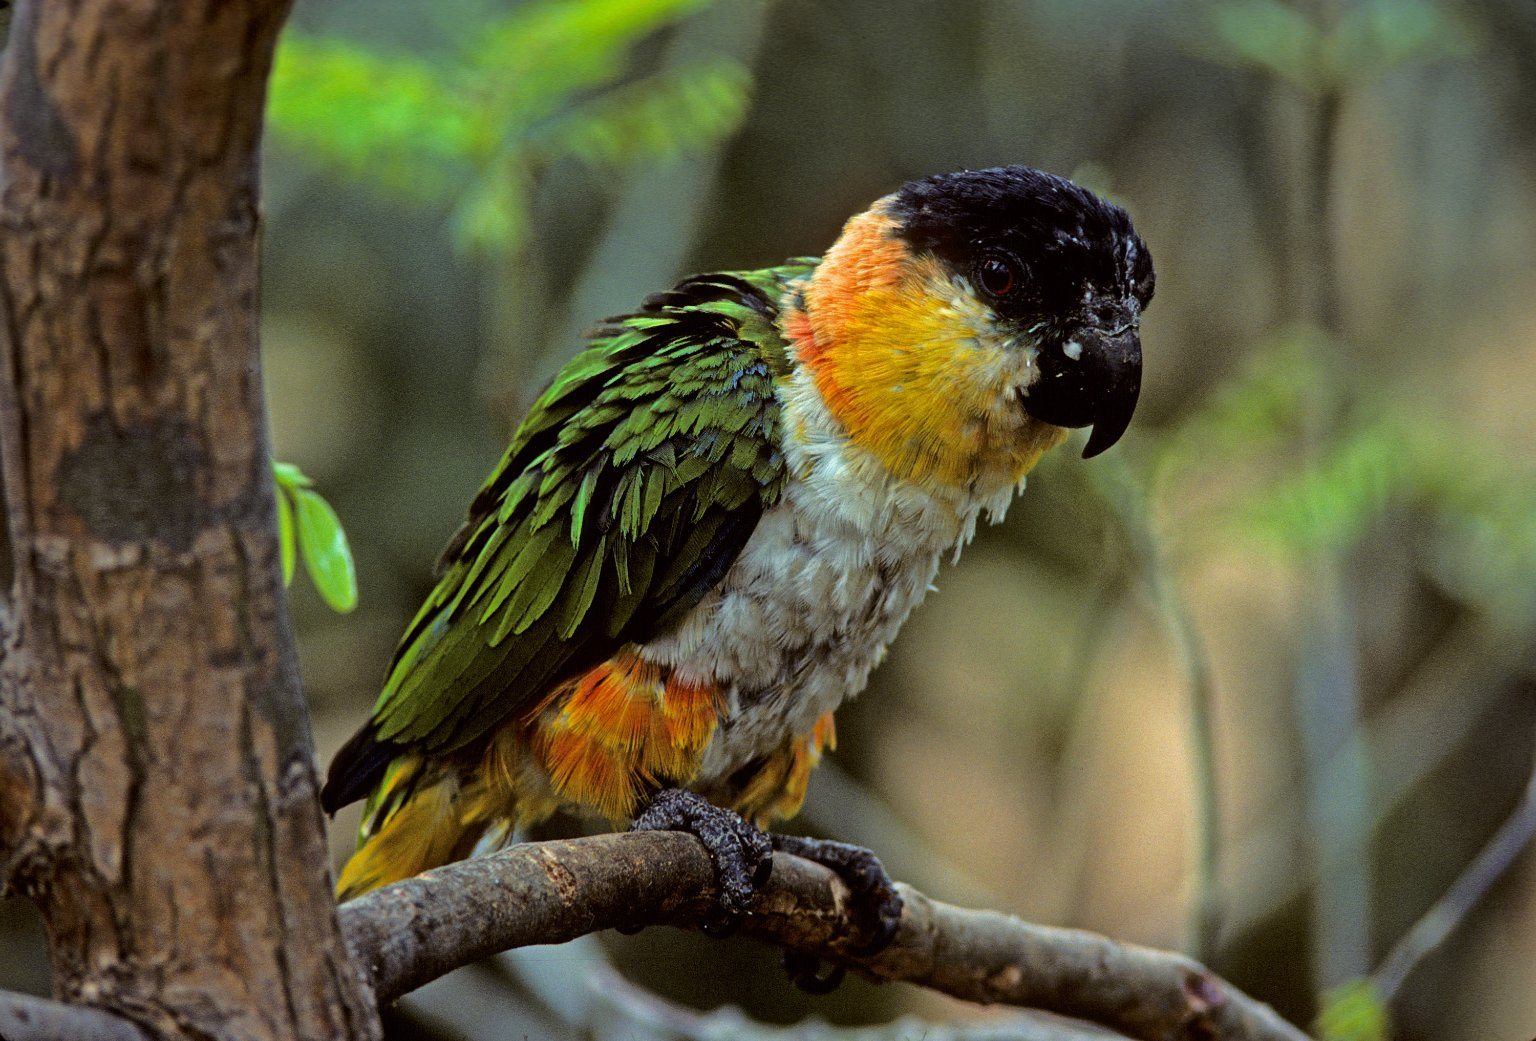 Black-headed Caique, also callled Black-headed Parrot